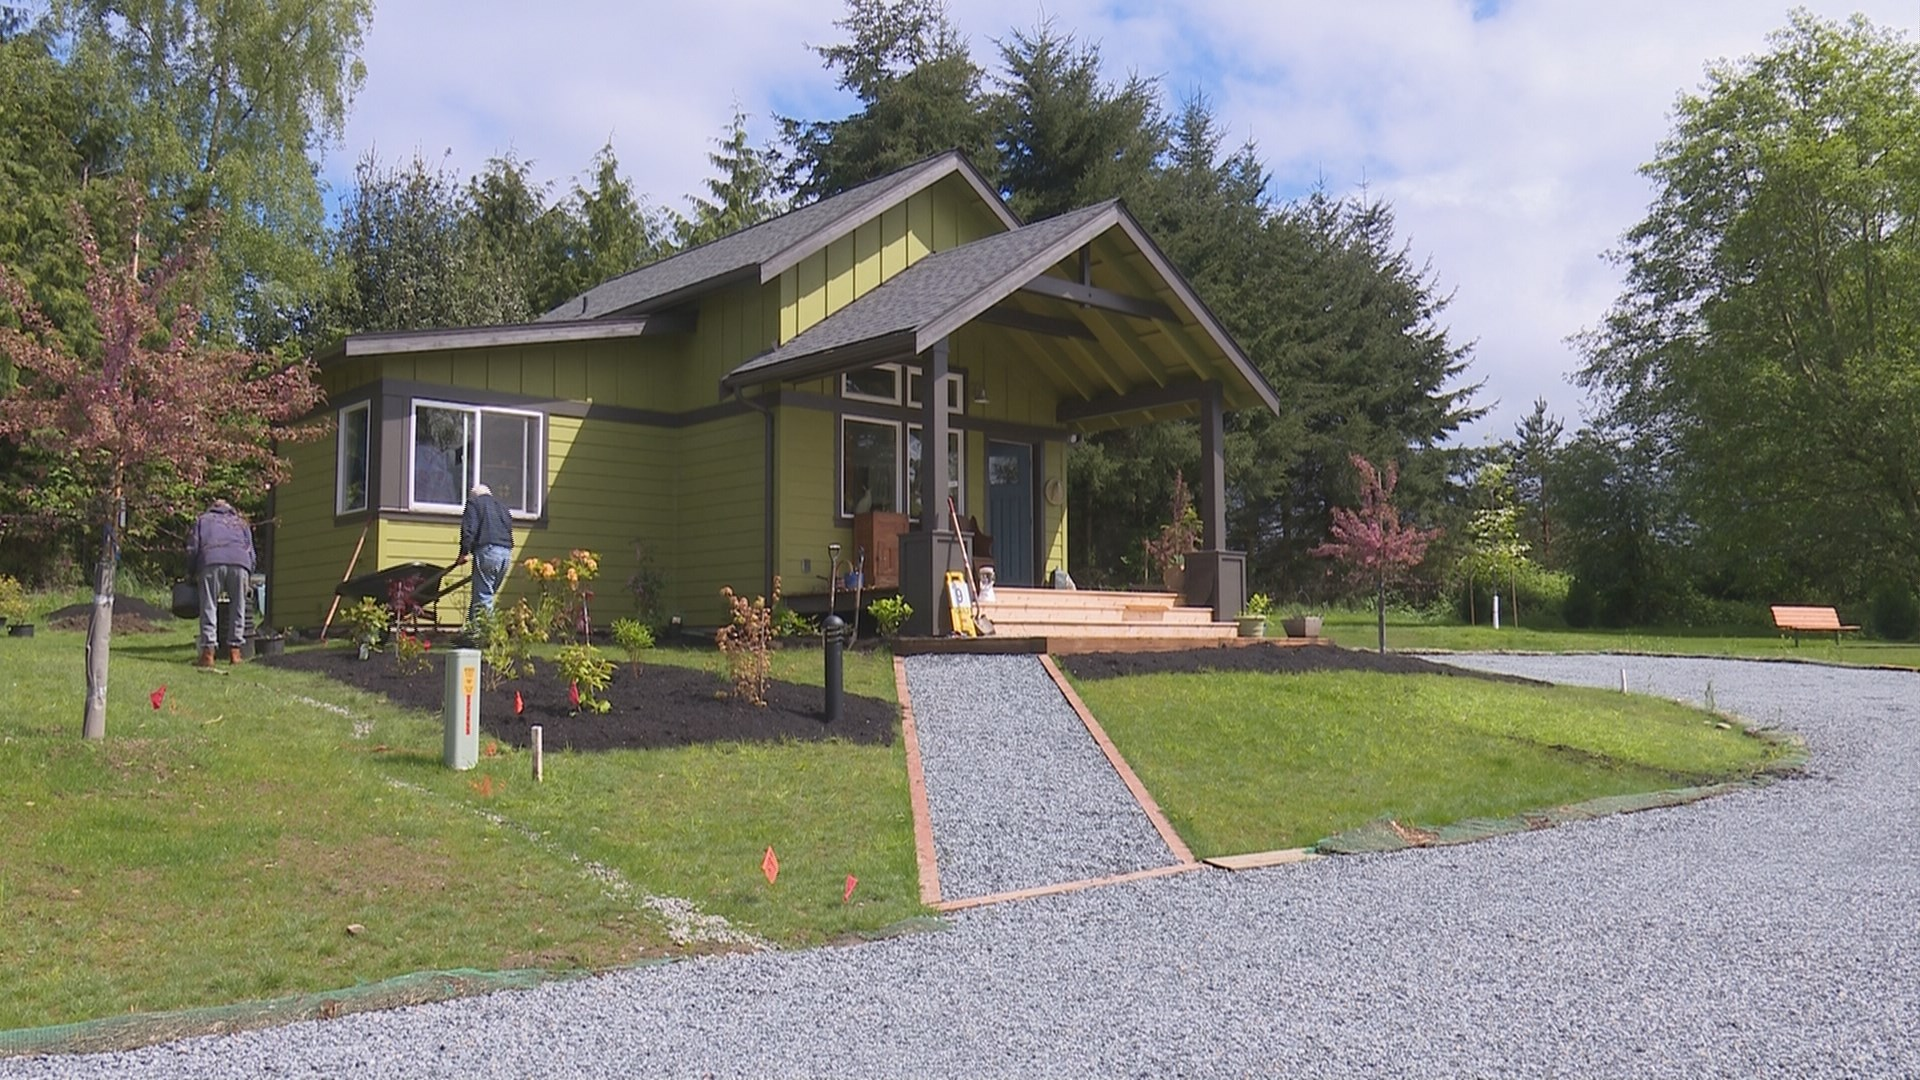 Affordable small home village opens on vashon island for Small affordable homes